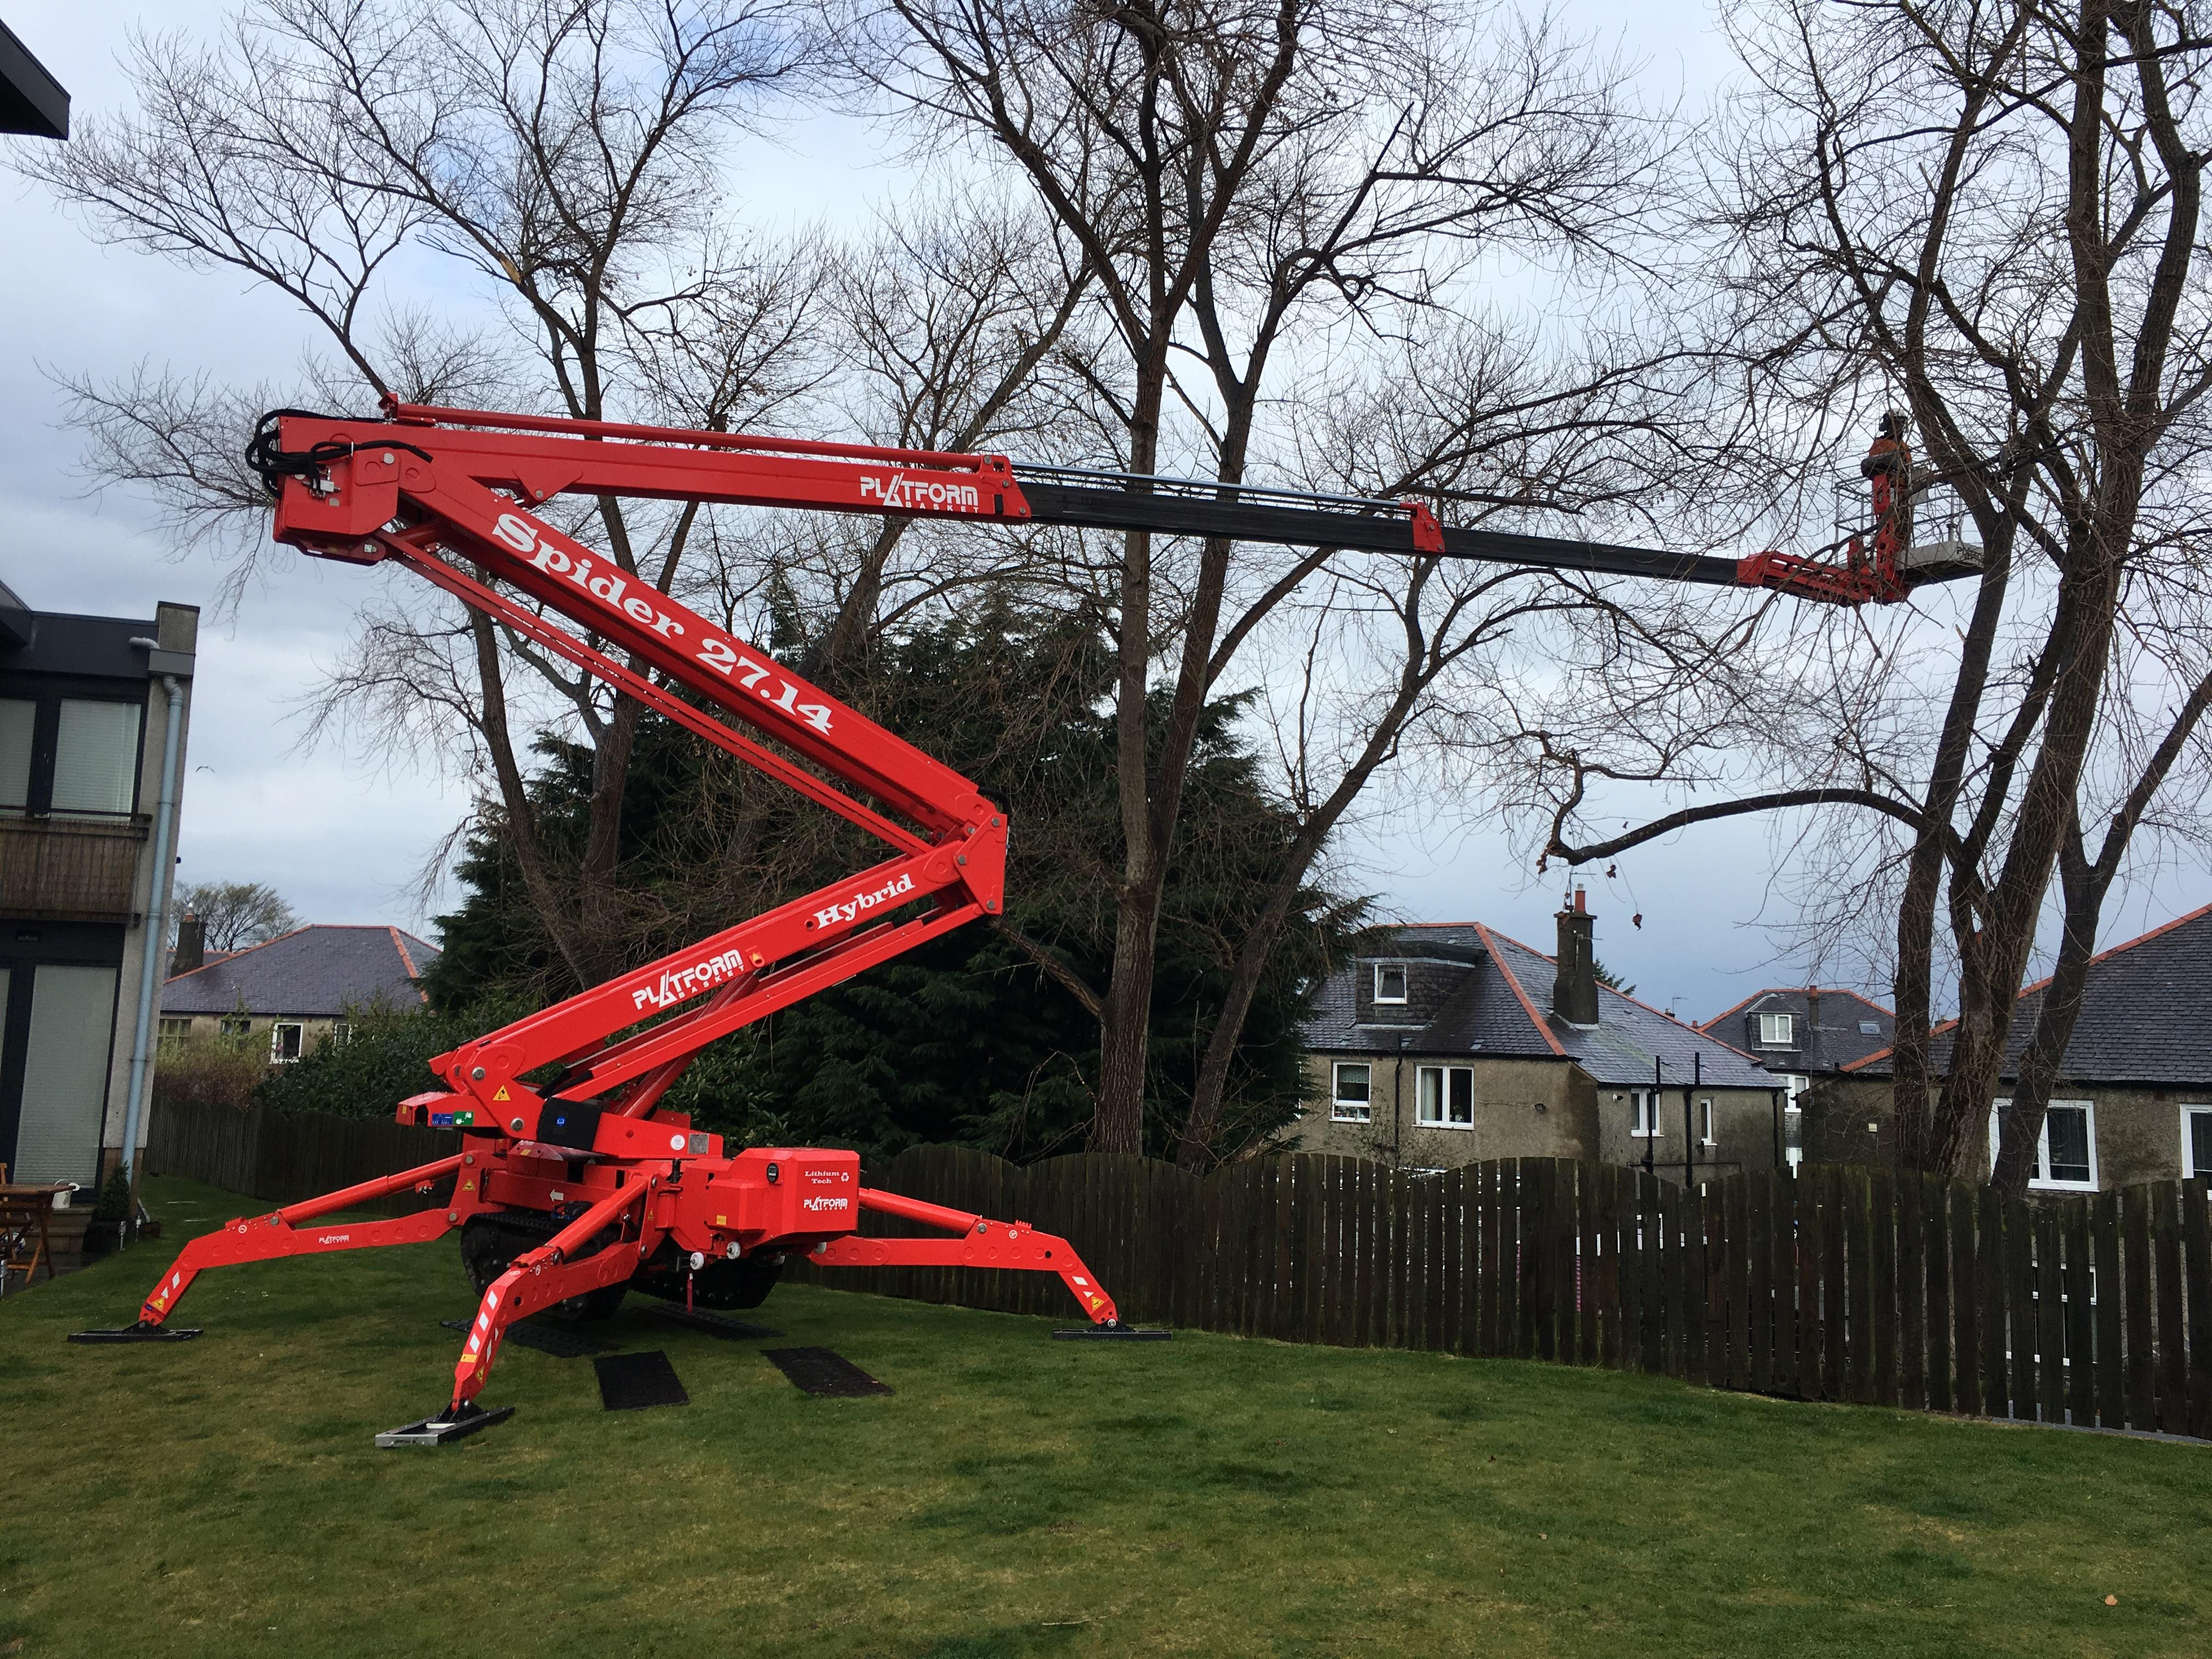 Forestry access platform Spider 27.14 long boom access